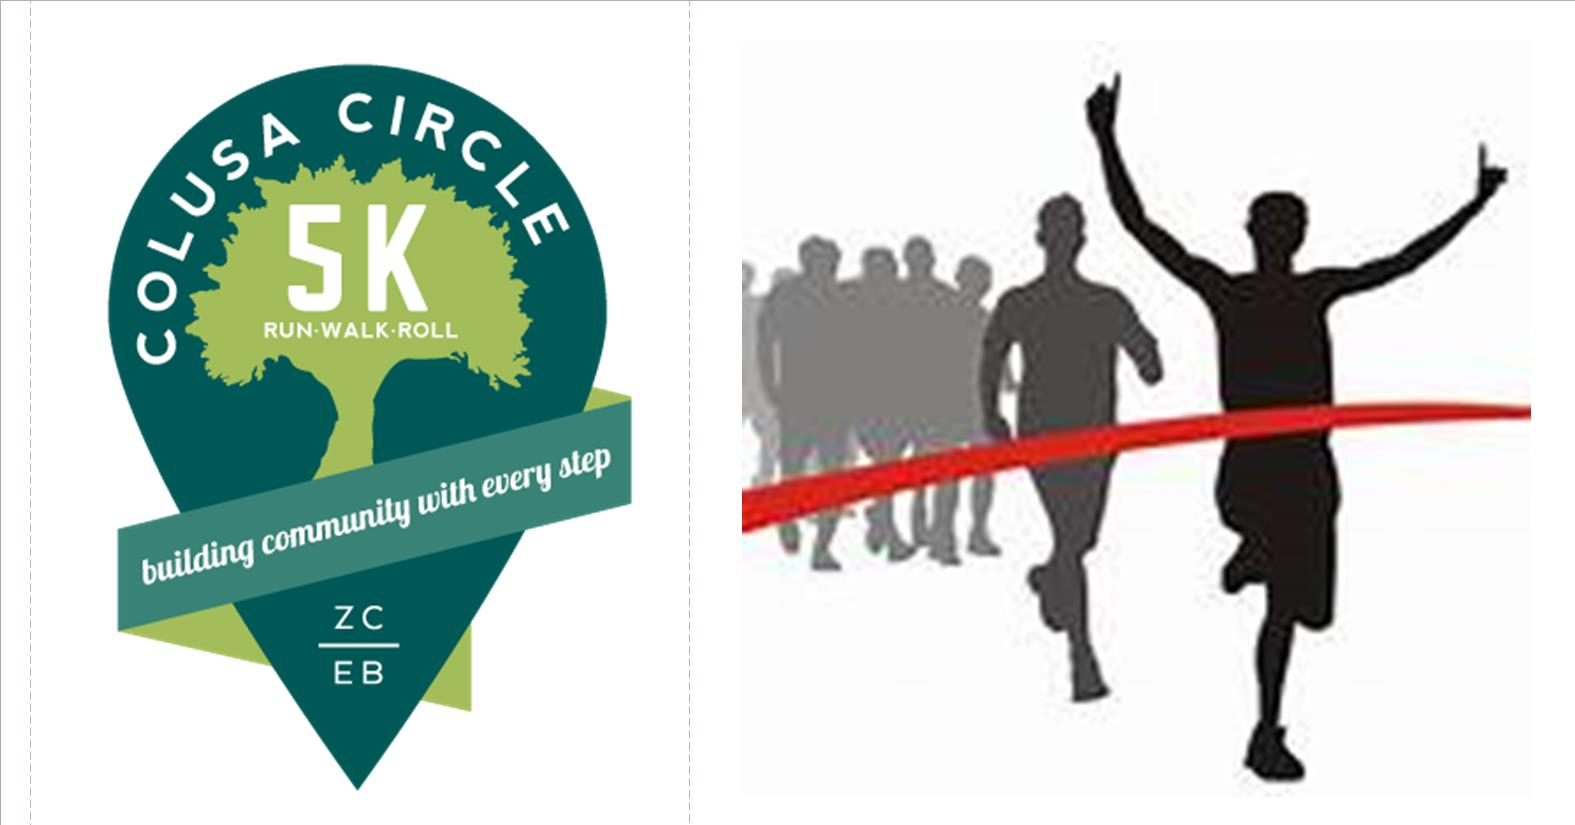 Colusa Circle 5K – Proceeds to support BOSS!